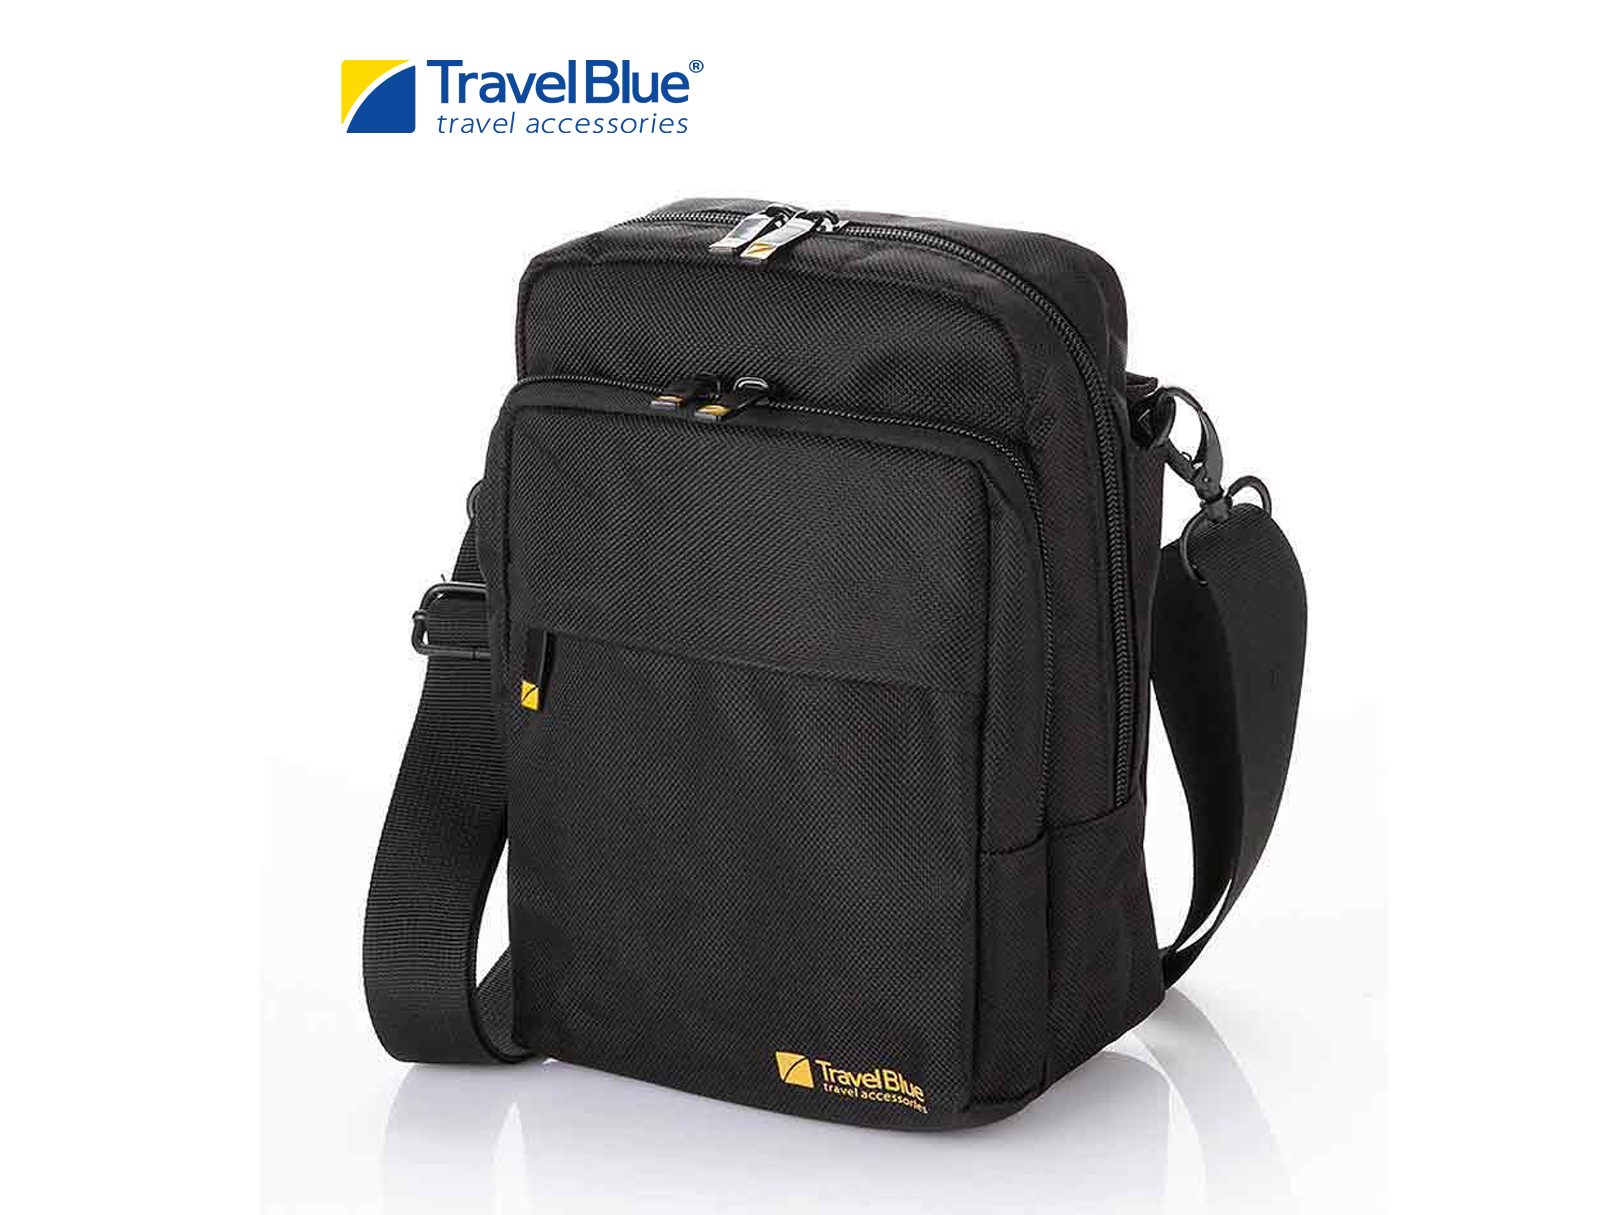 URBAN BAG TRAVEL BLUE TBK812